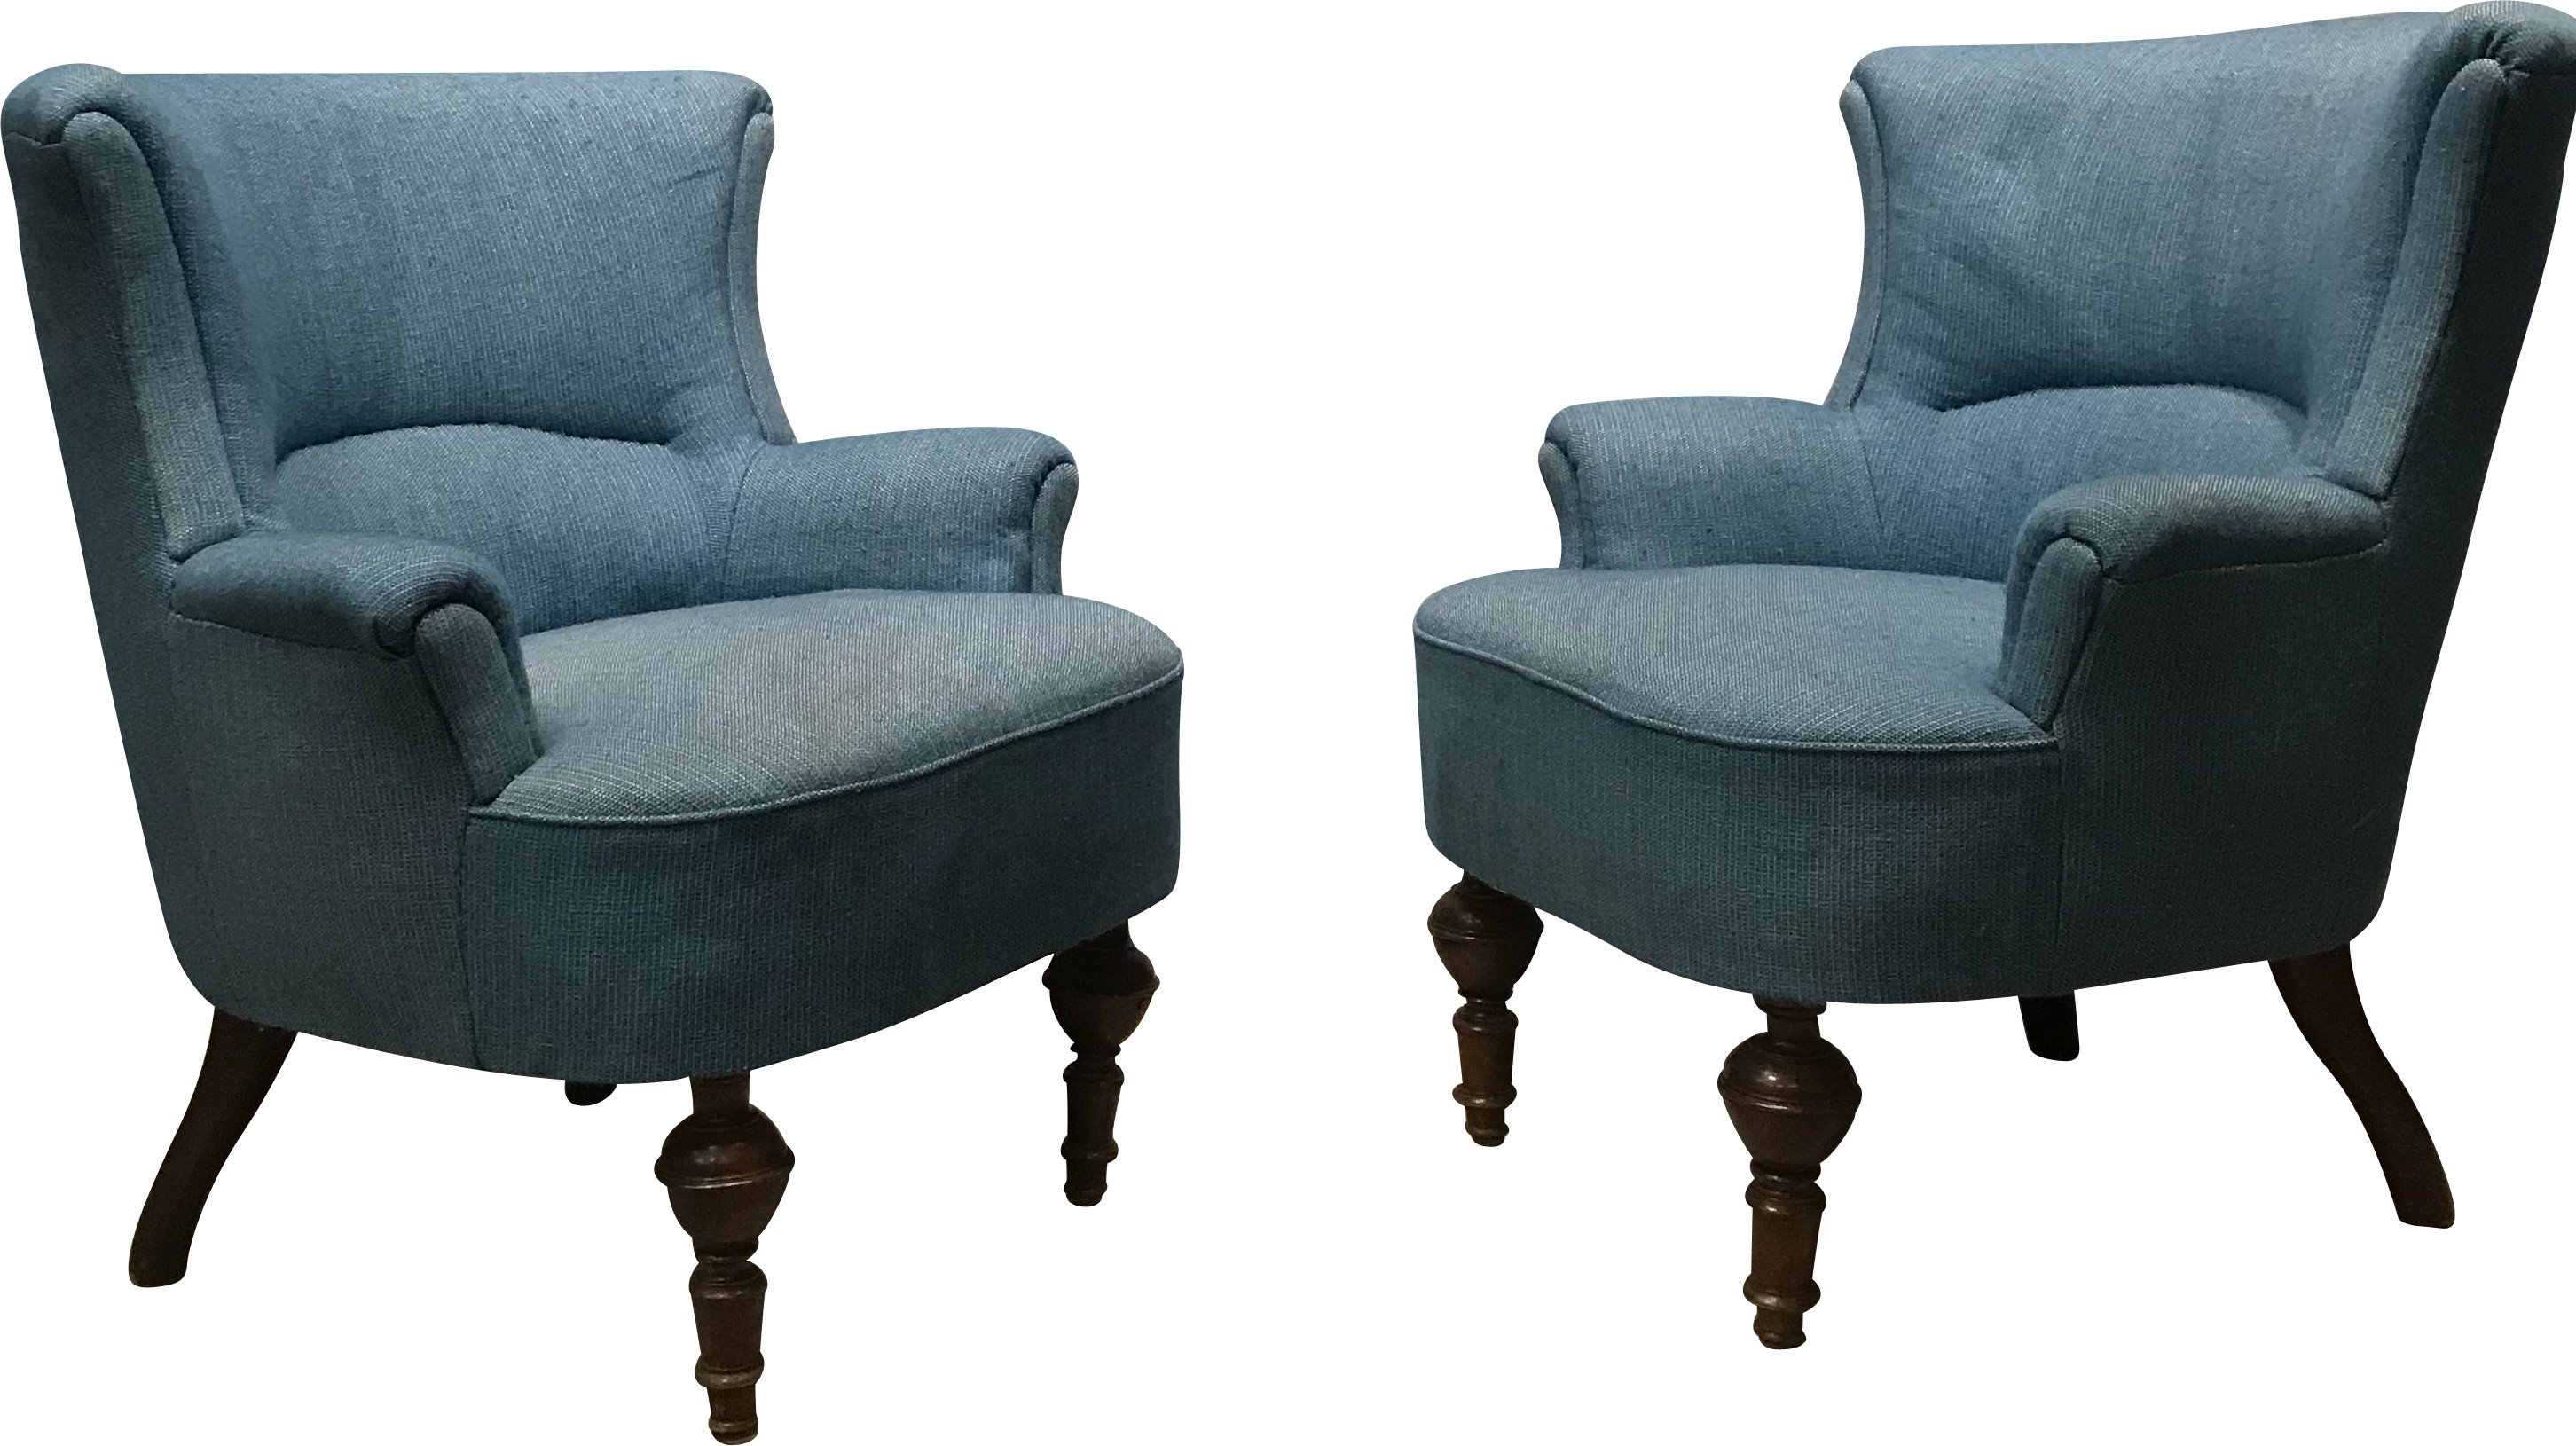 Pair of Armchairs, Sweden, 1920s